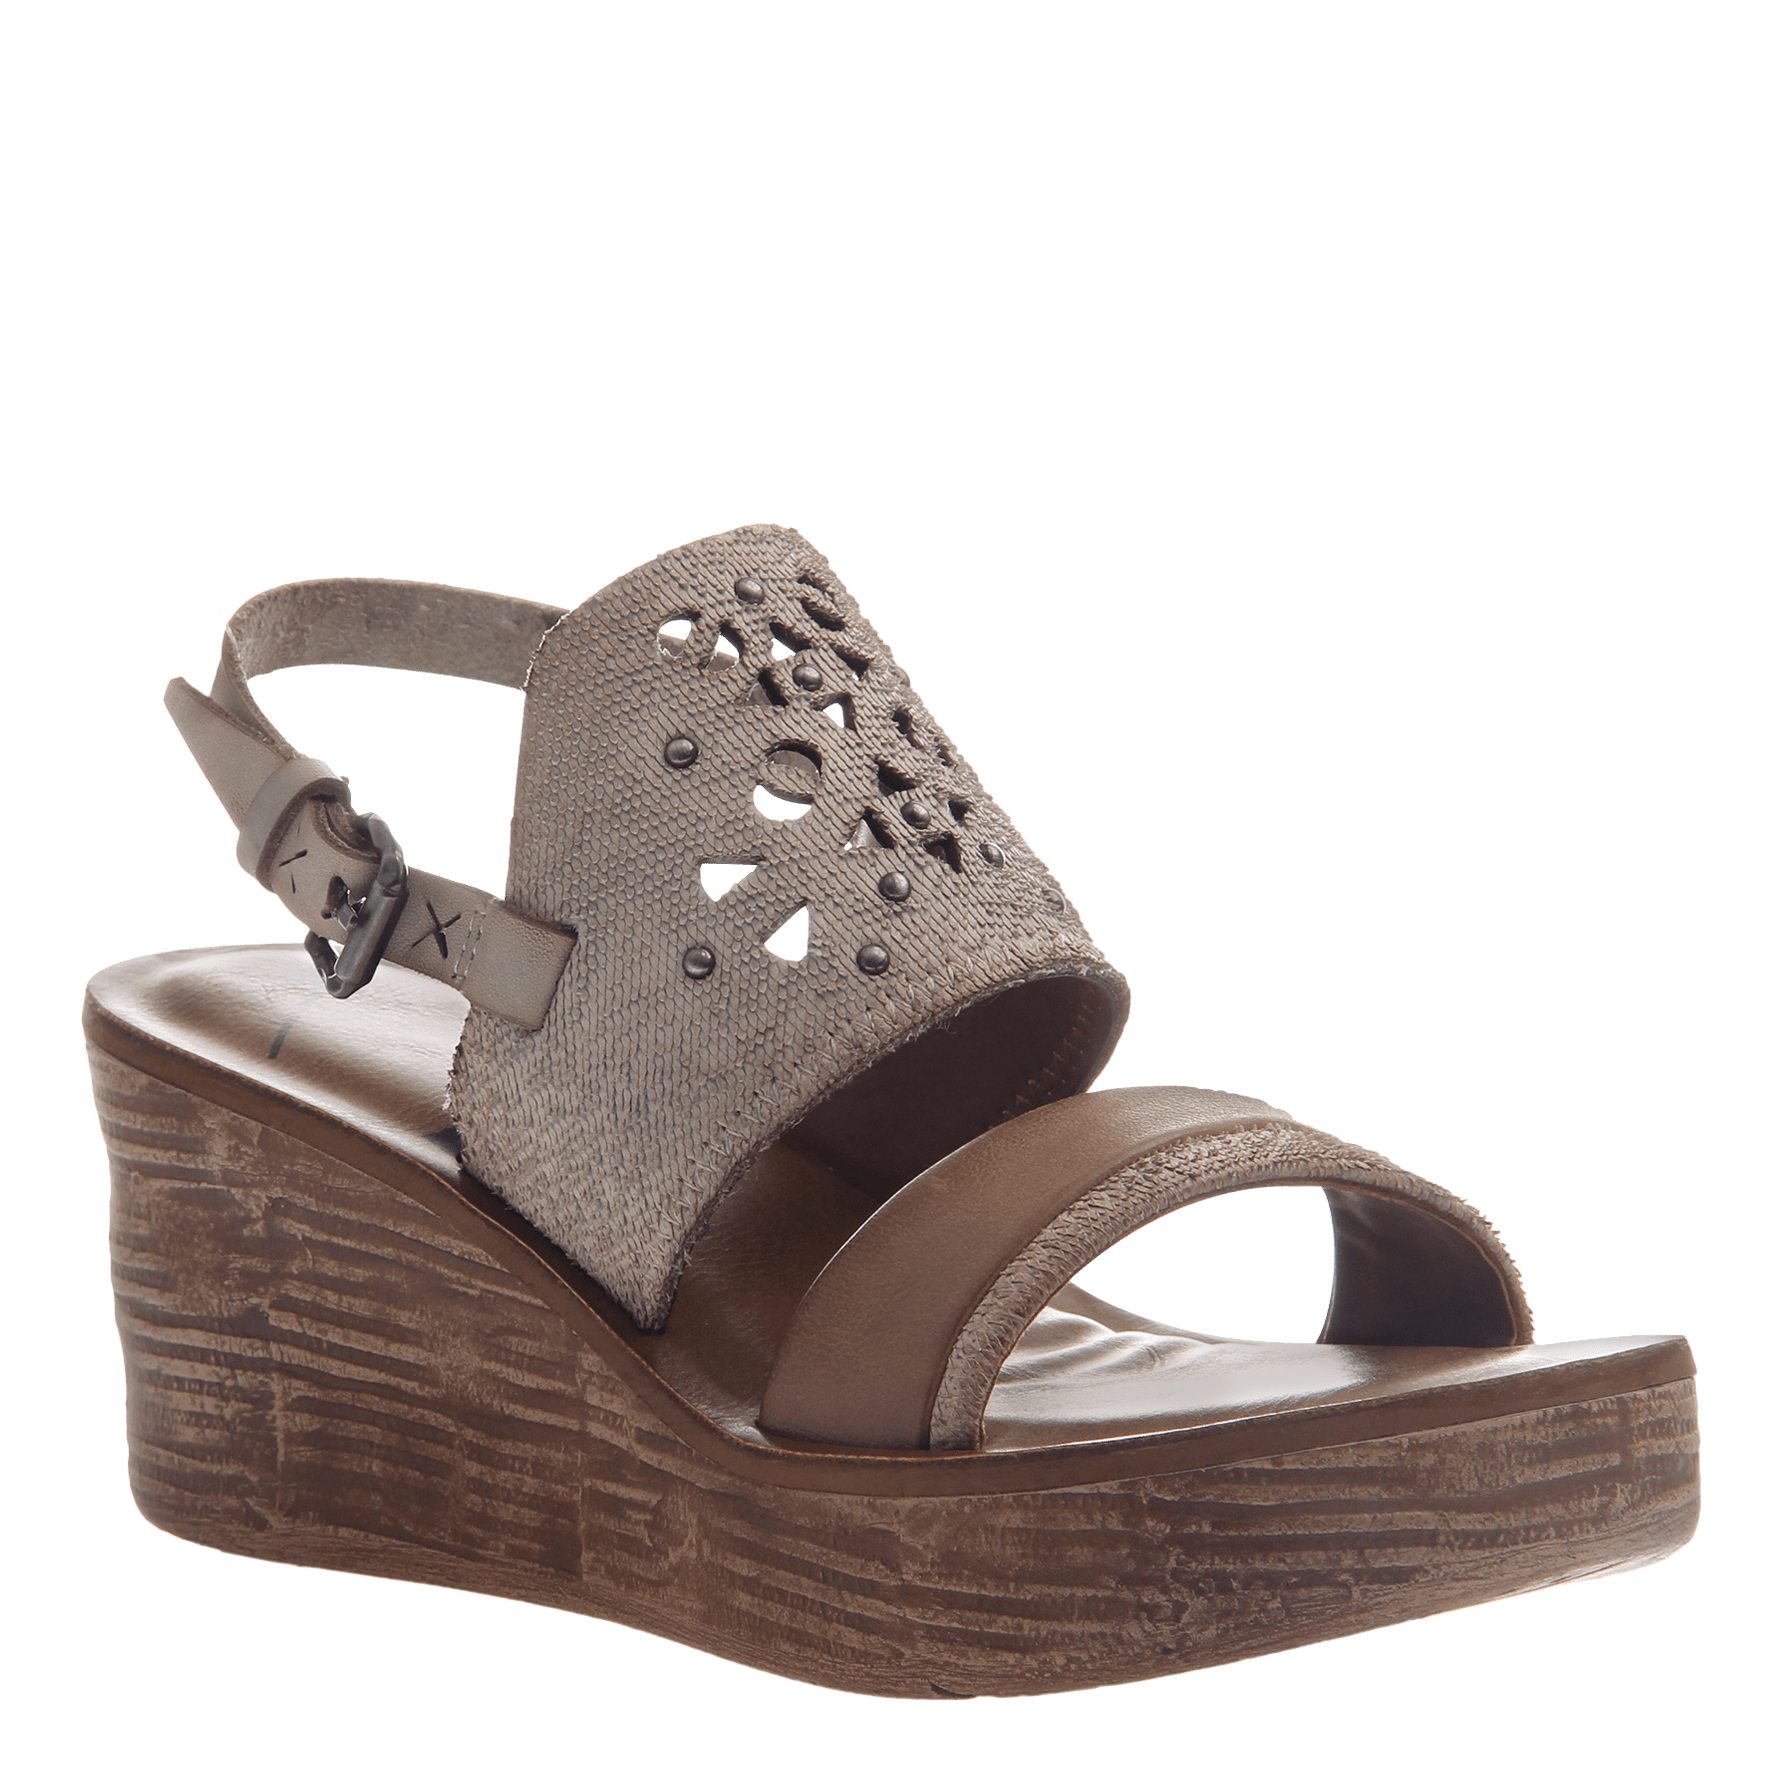 OTBT Womens Hippie Wedge Sandal  1O1NIS25B